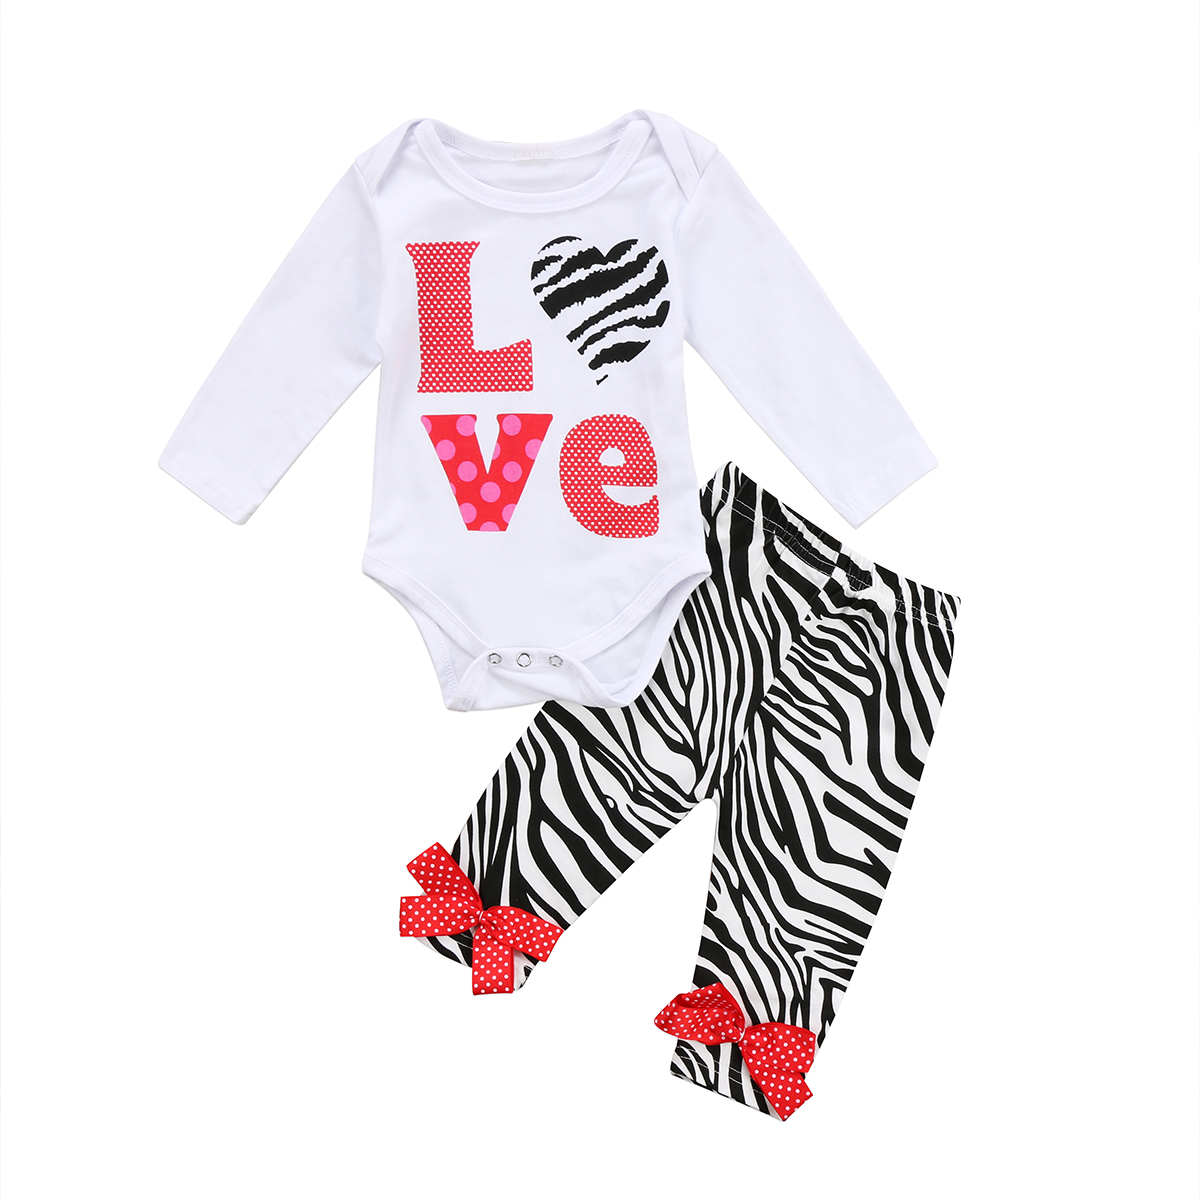 Pudcoco Cute Toddler Infant Baby Girls Clothes Cotton Long Sleeve O-Neck Bodysuit Striped Pants Outfits Set 0-24 Months Helen115